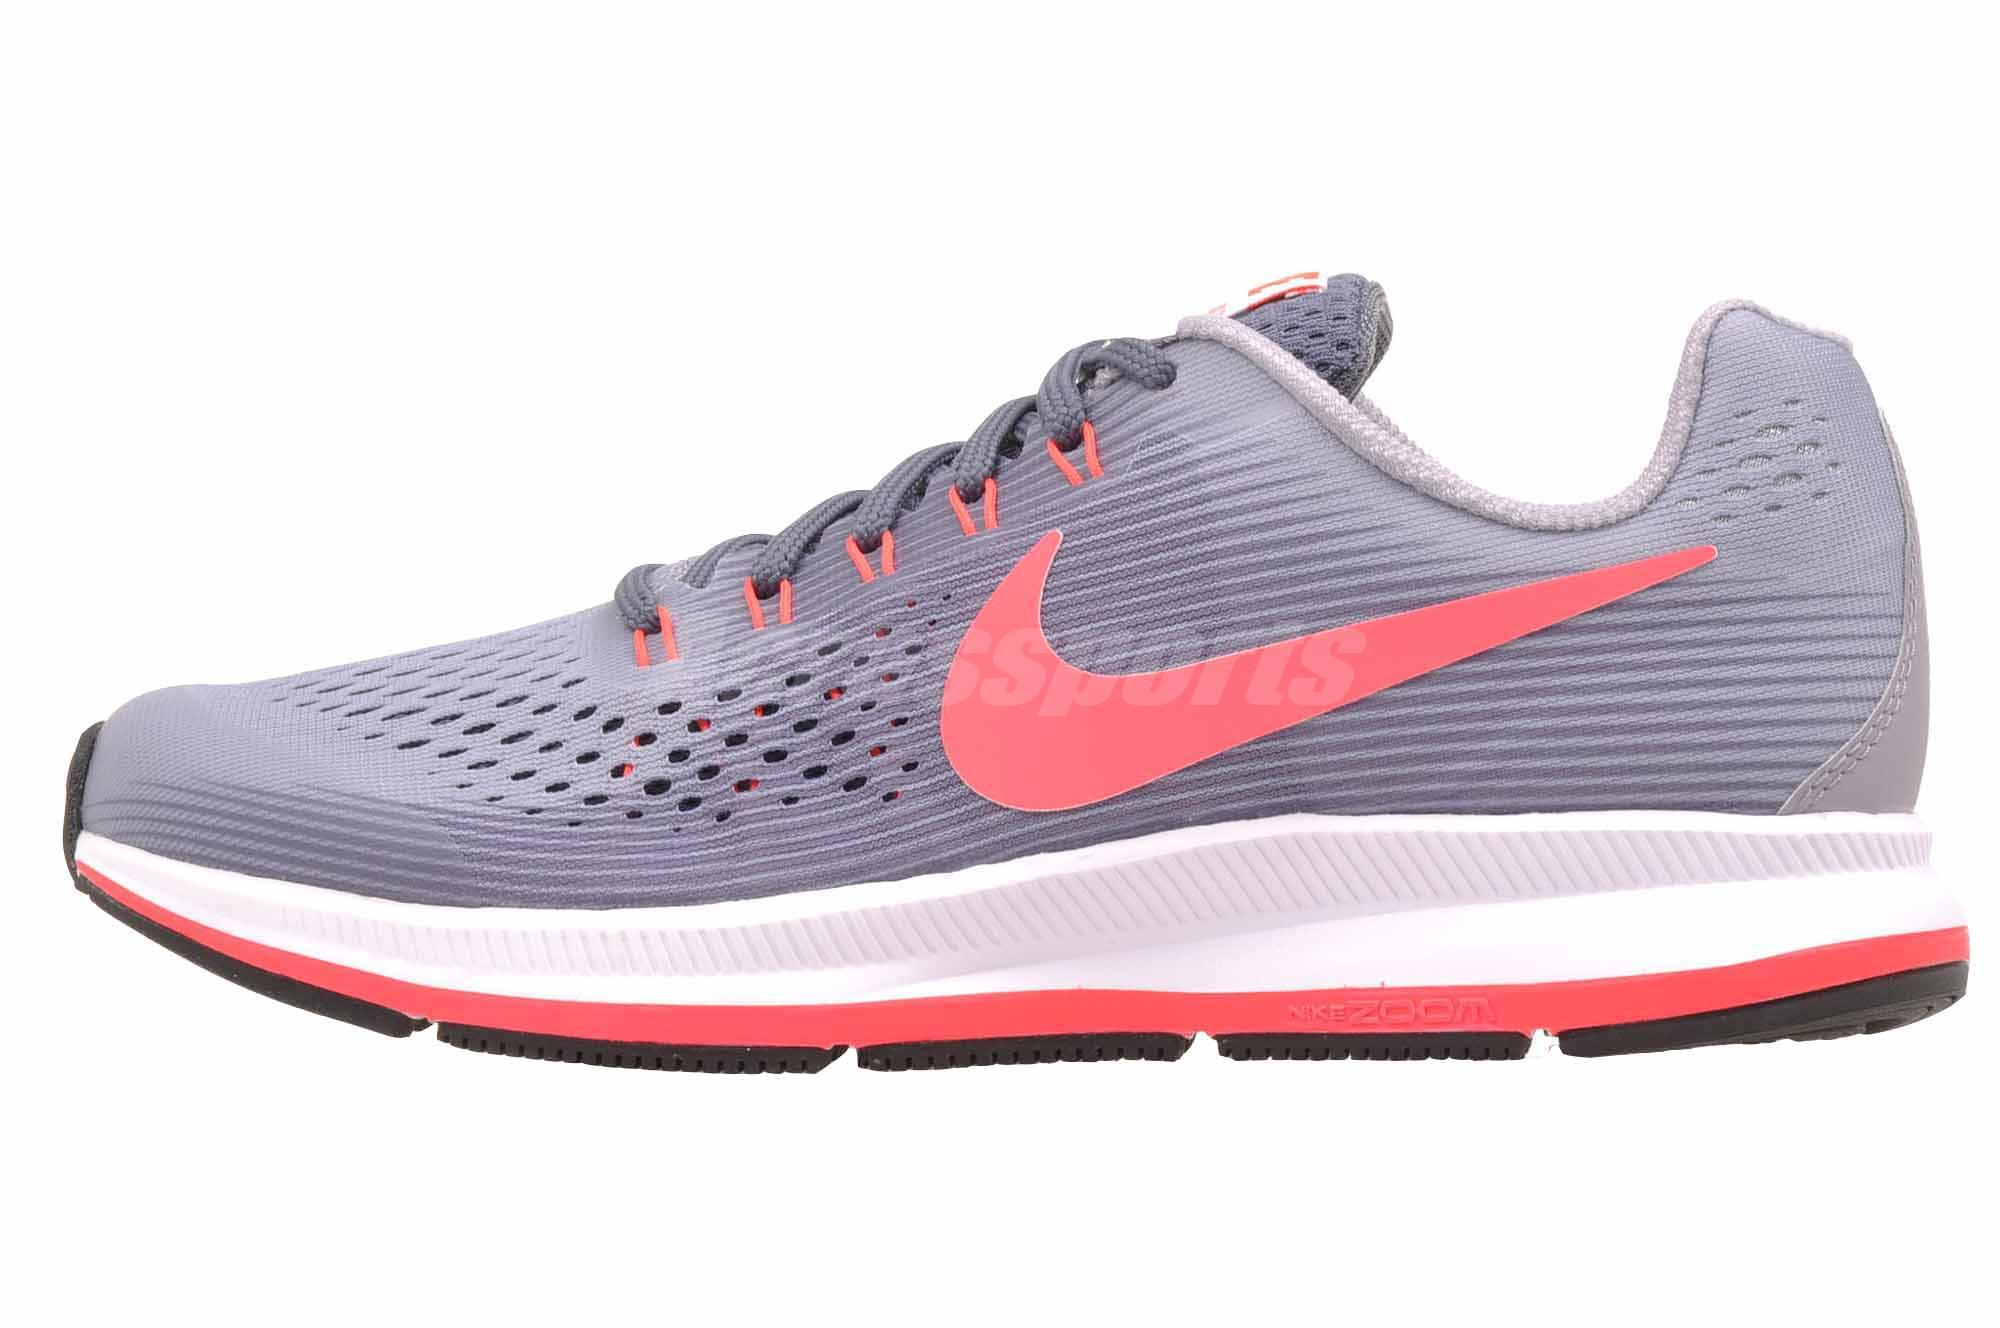 Details about Nike Zoom Pegasus 34 GS Running Kids Womens Shoes Provence  Purple 881954-501 4581e3fd2